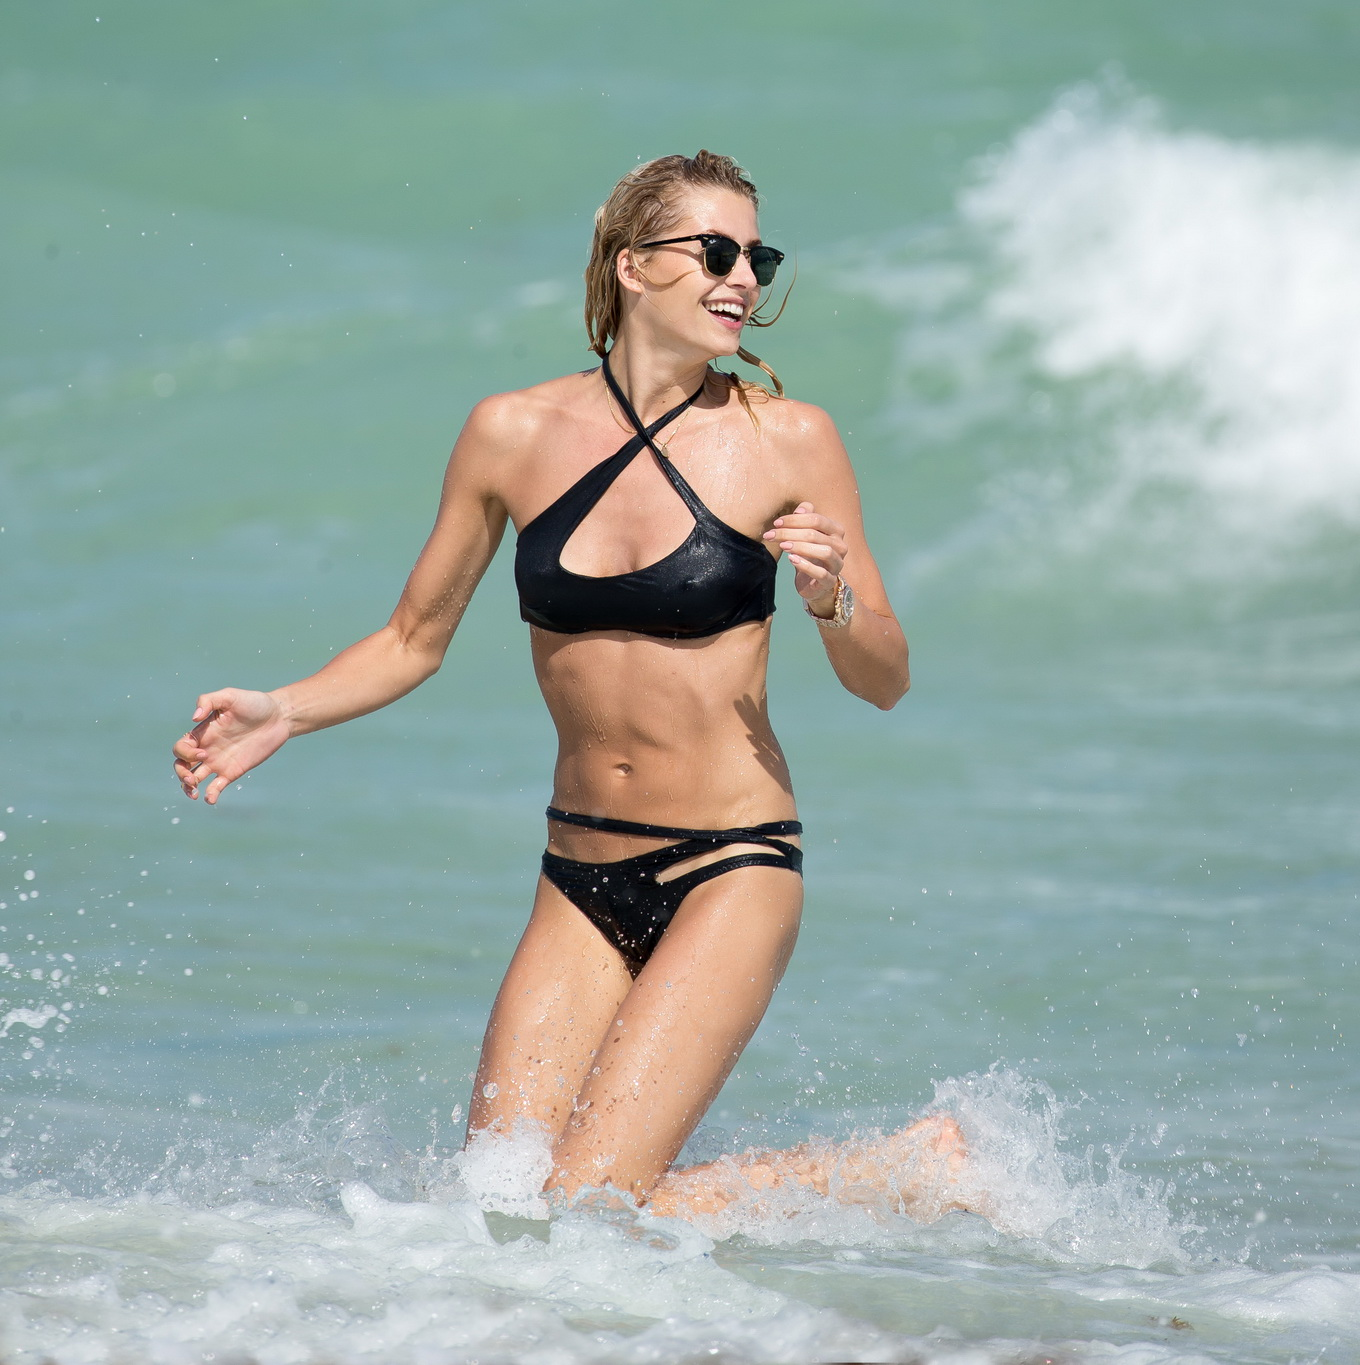 Lena Gercke showing off her hot body in skimpy black ...